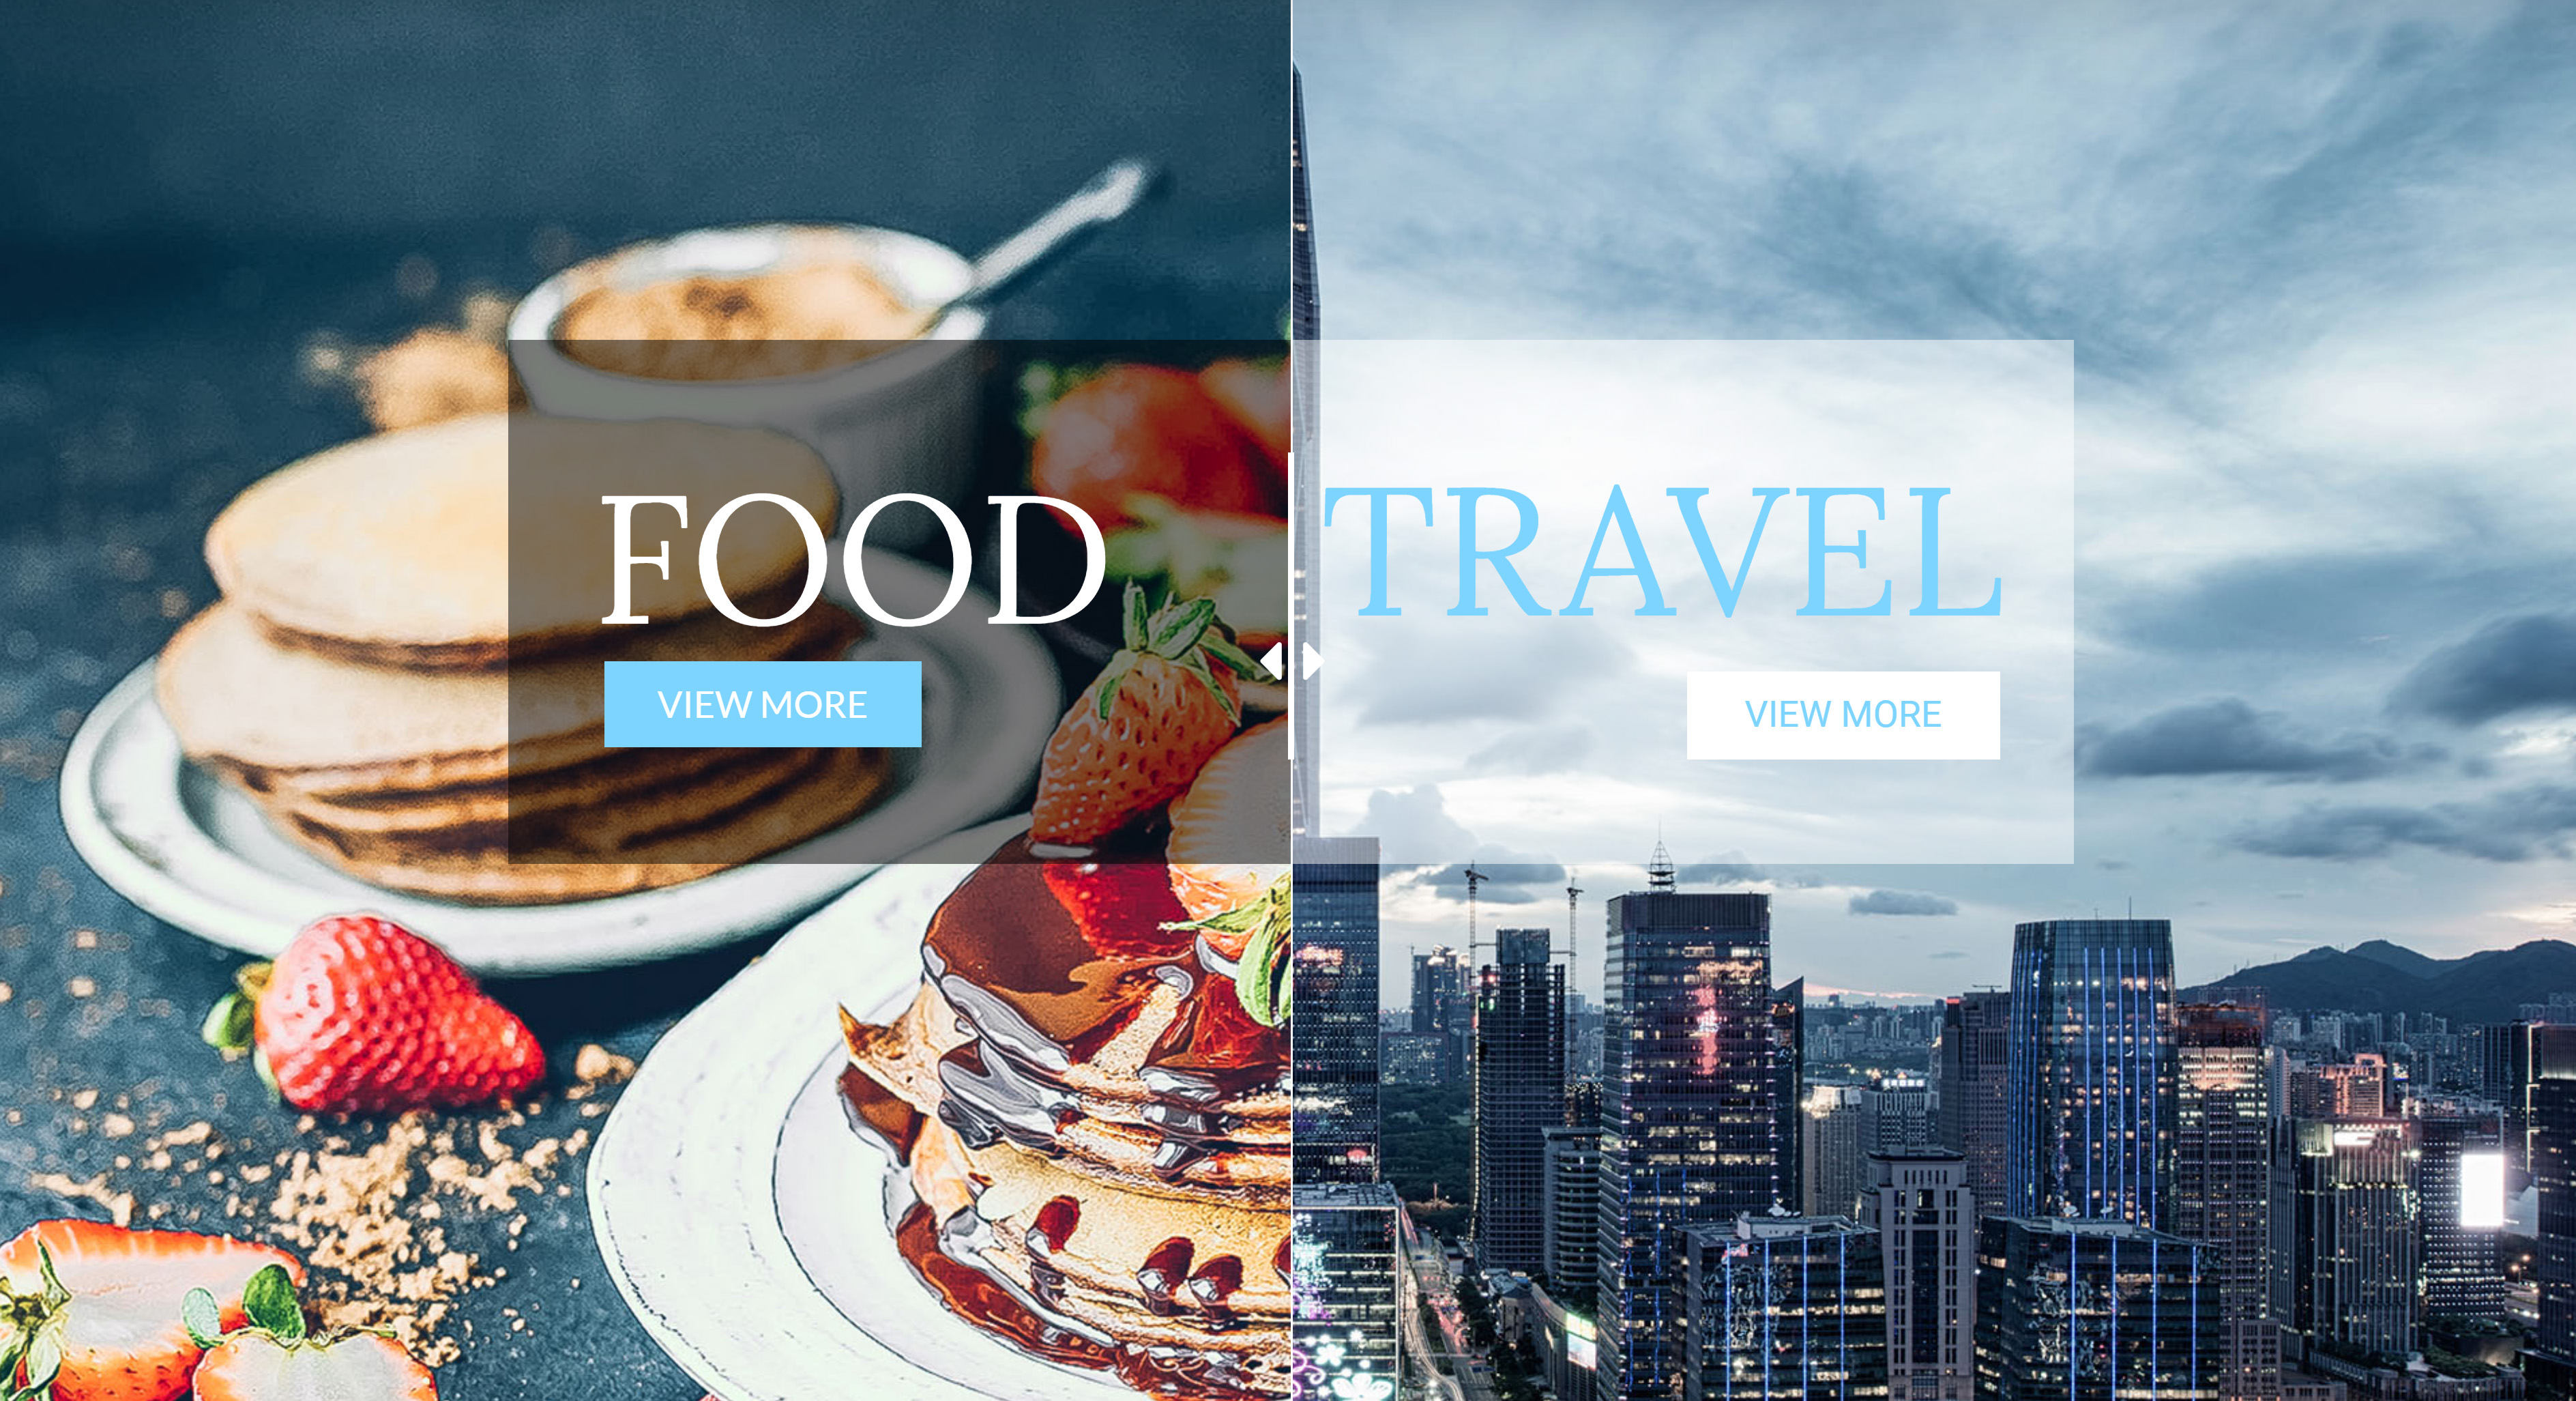 Introducing Easy Travel Recipes, Singaporean One-stop Lifestyle Blog For Travel Guides and Cooking Tips